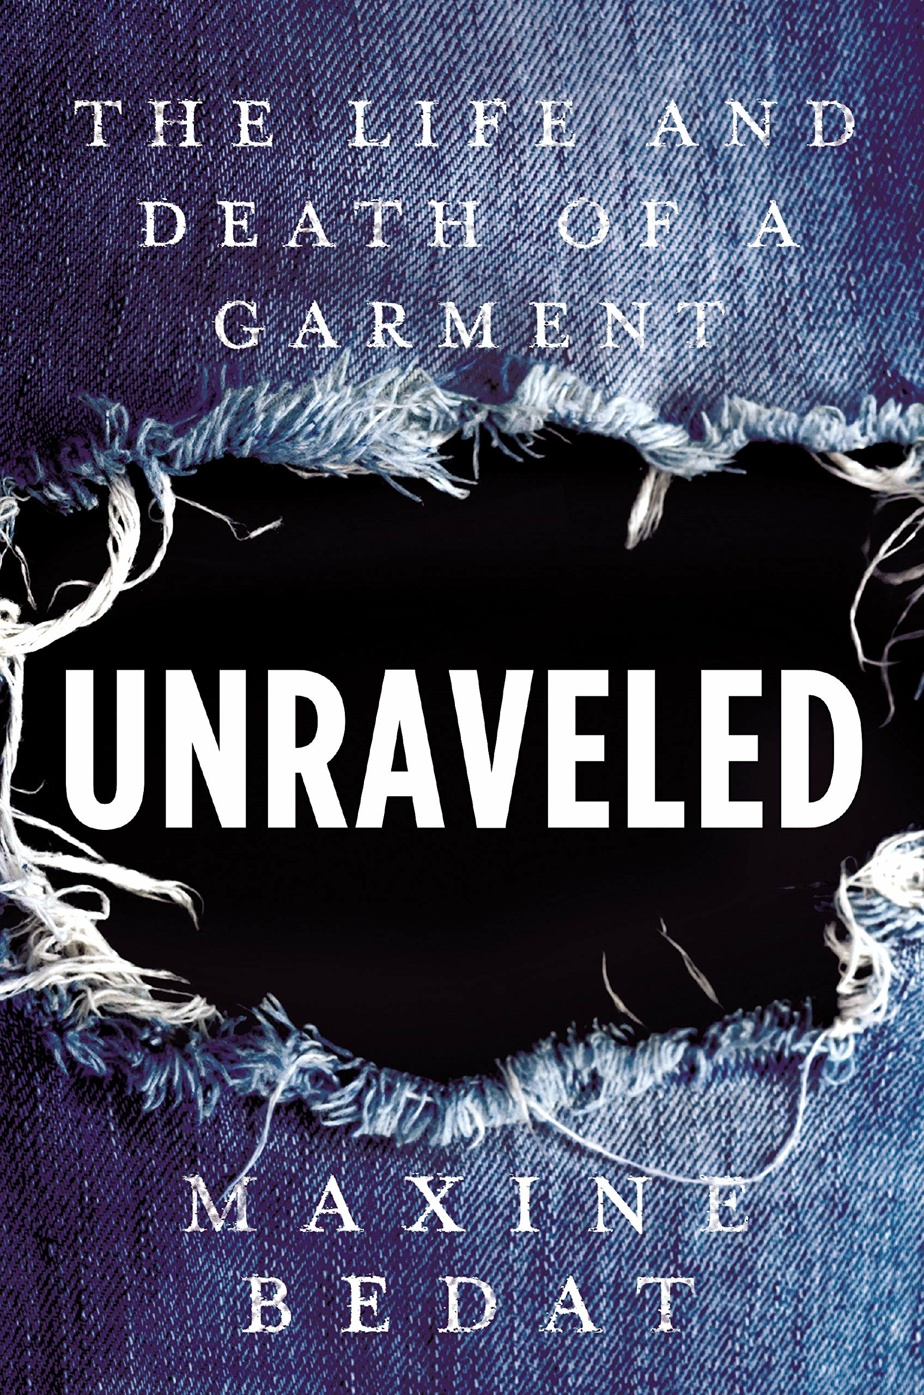 Unraveled – The Life and Death ofaGarment